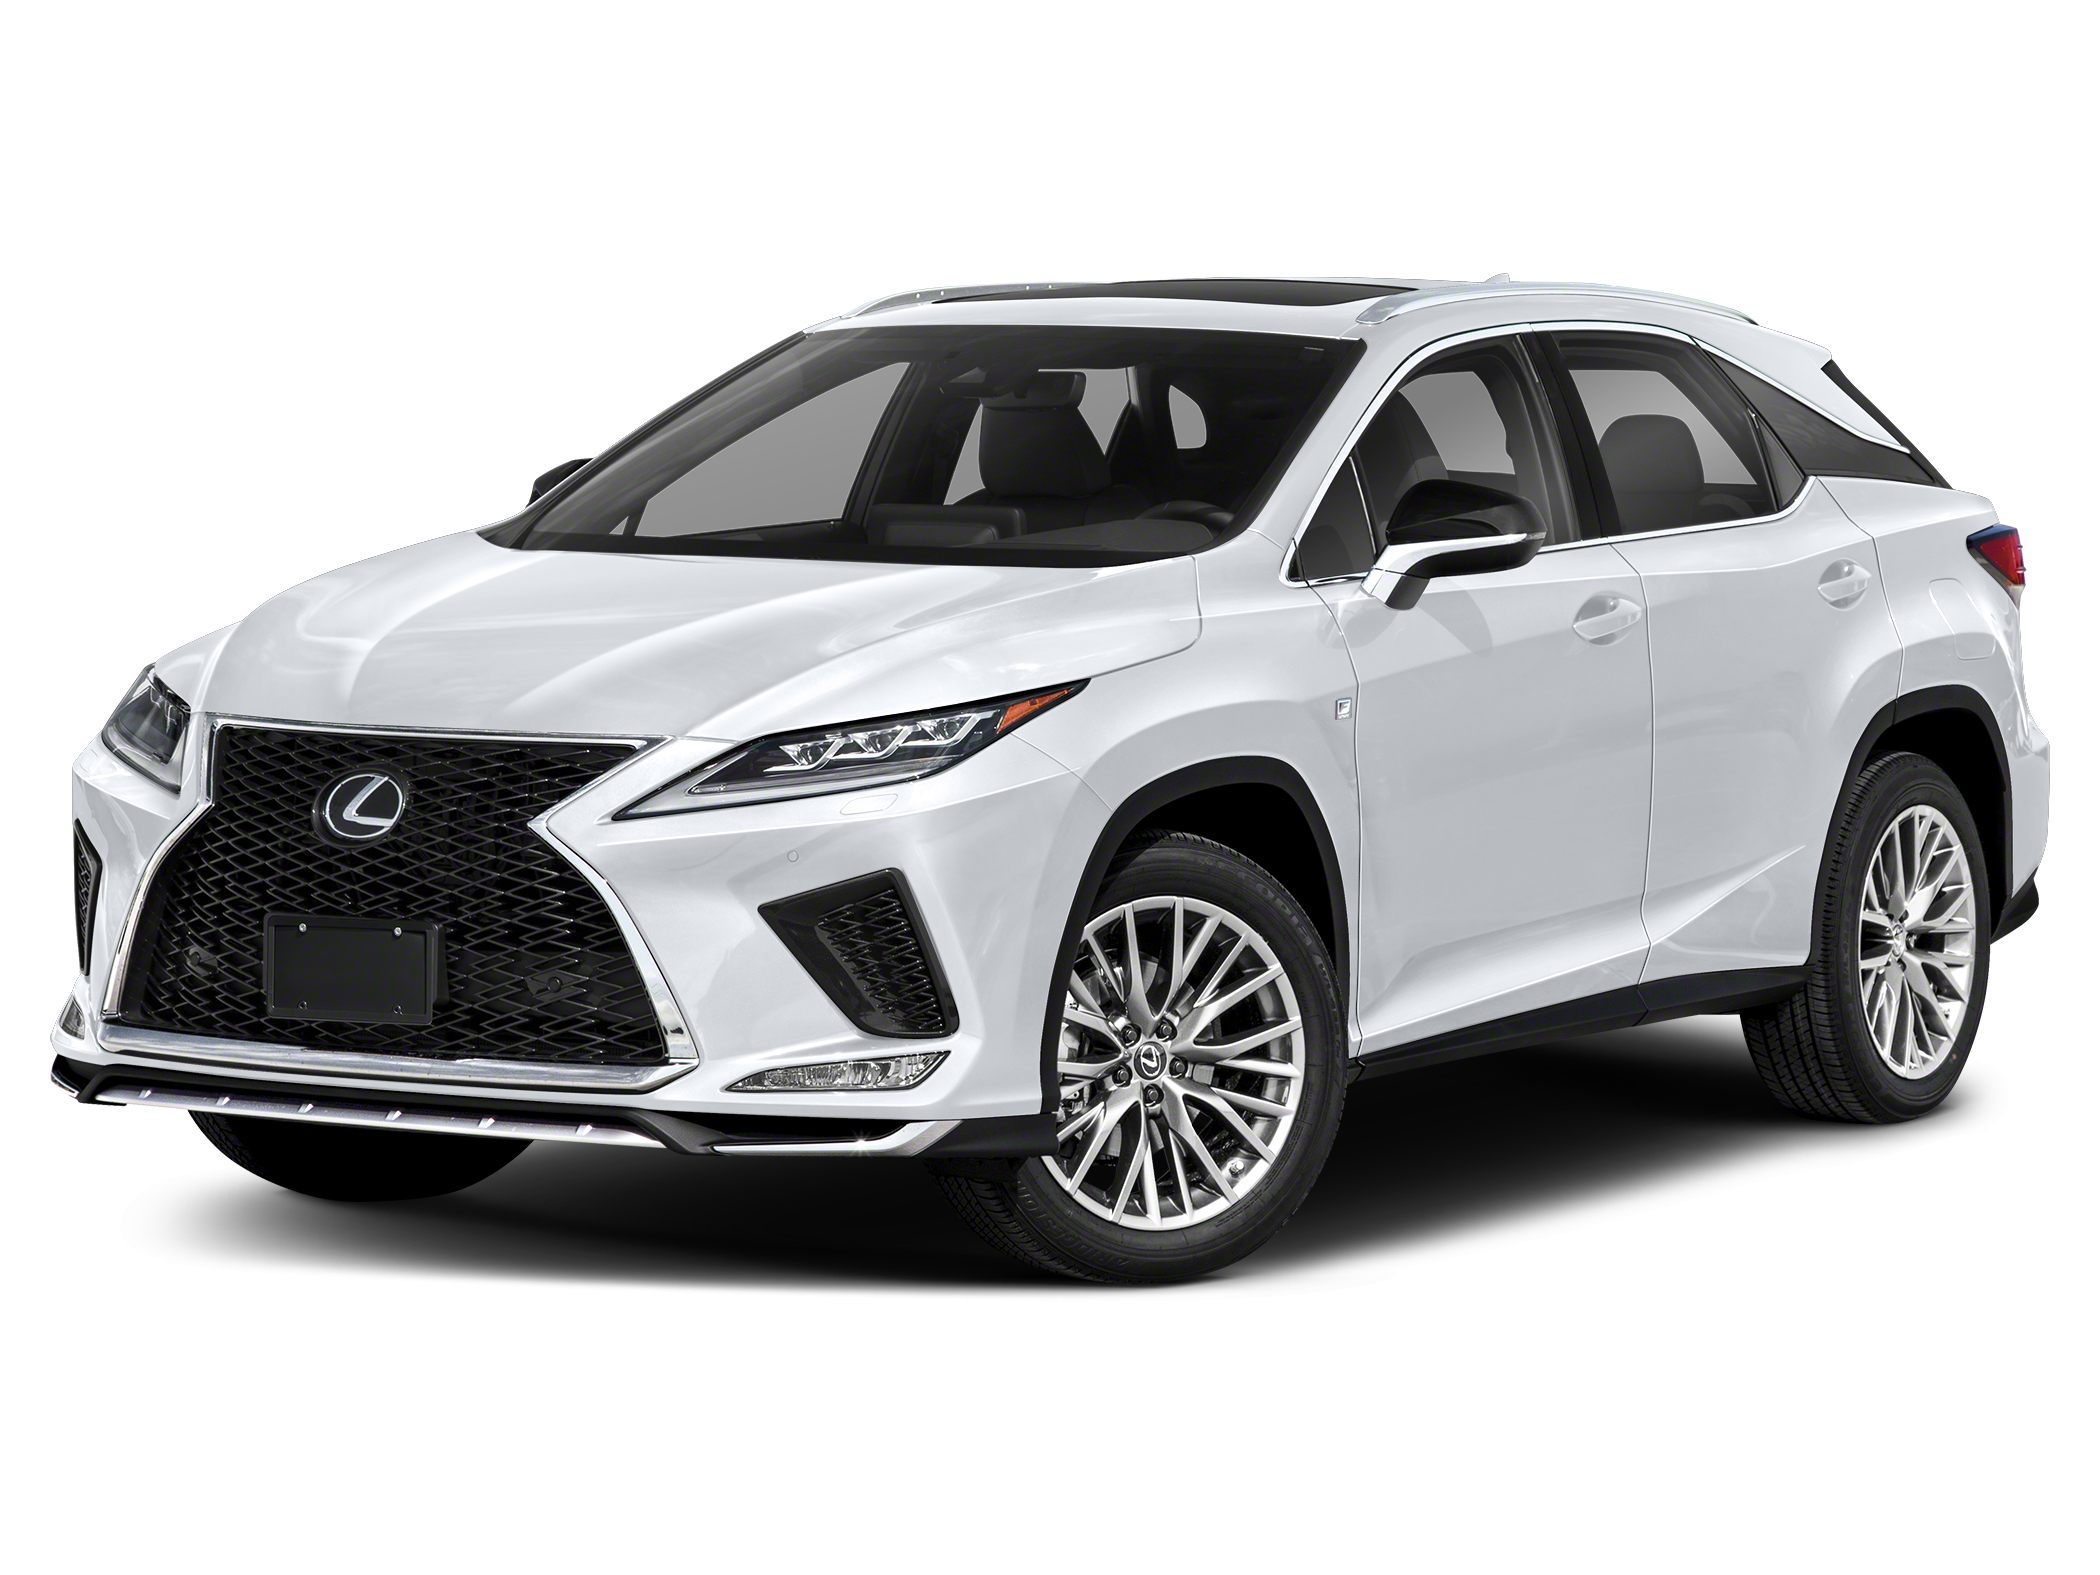 2021 New Lexus Rx 350 Suv F Sport Appearance For Sale In Grapevine Mc198716